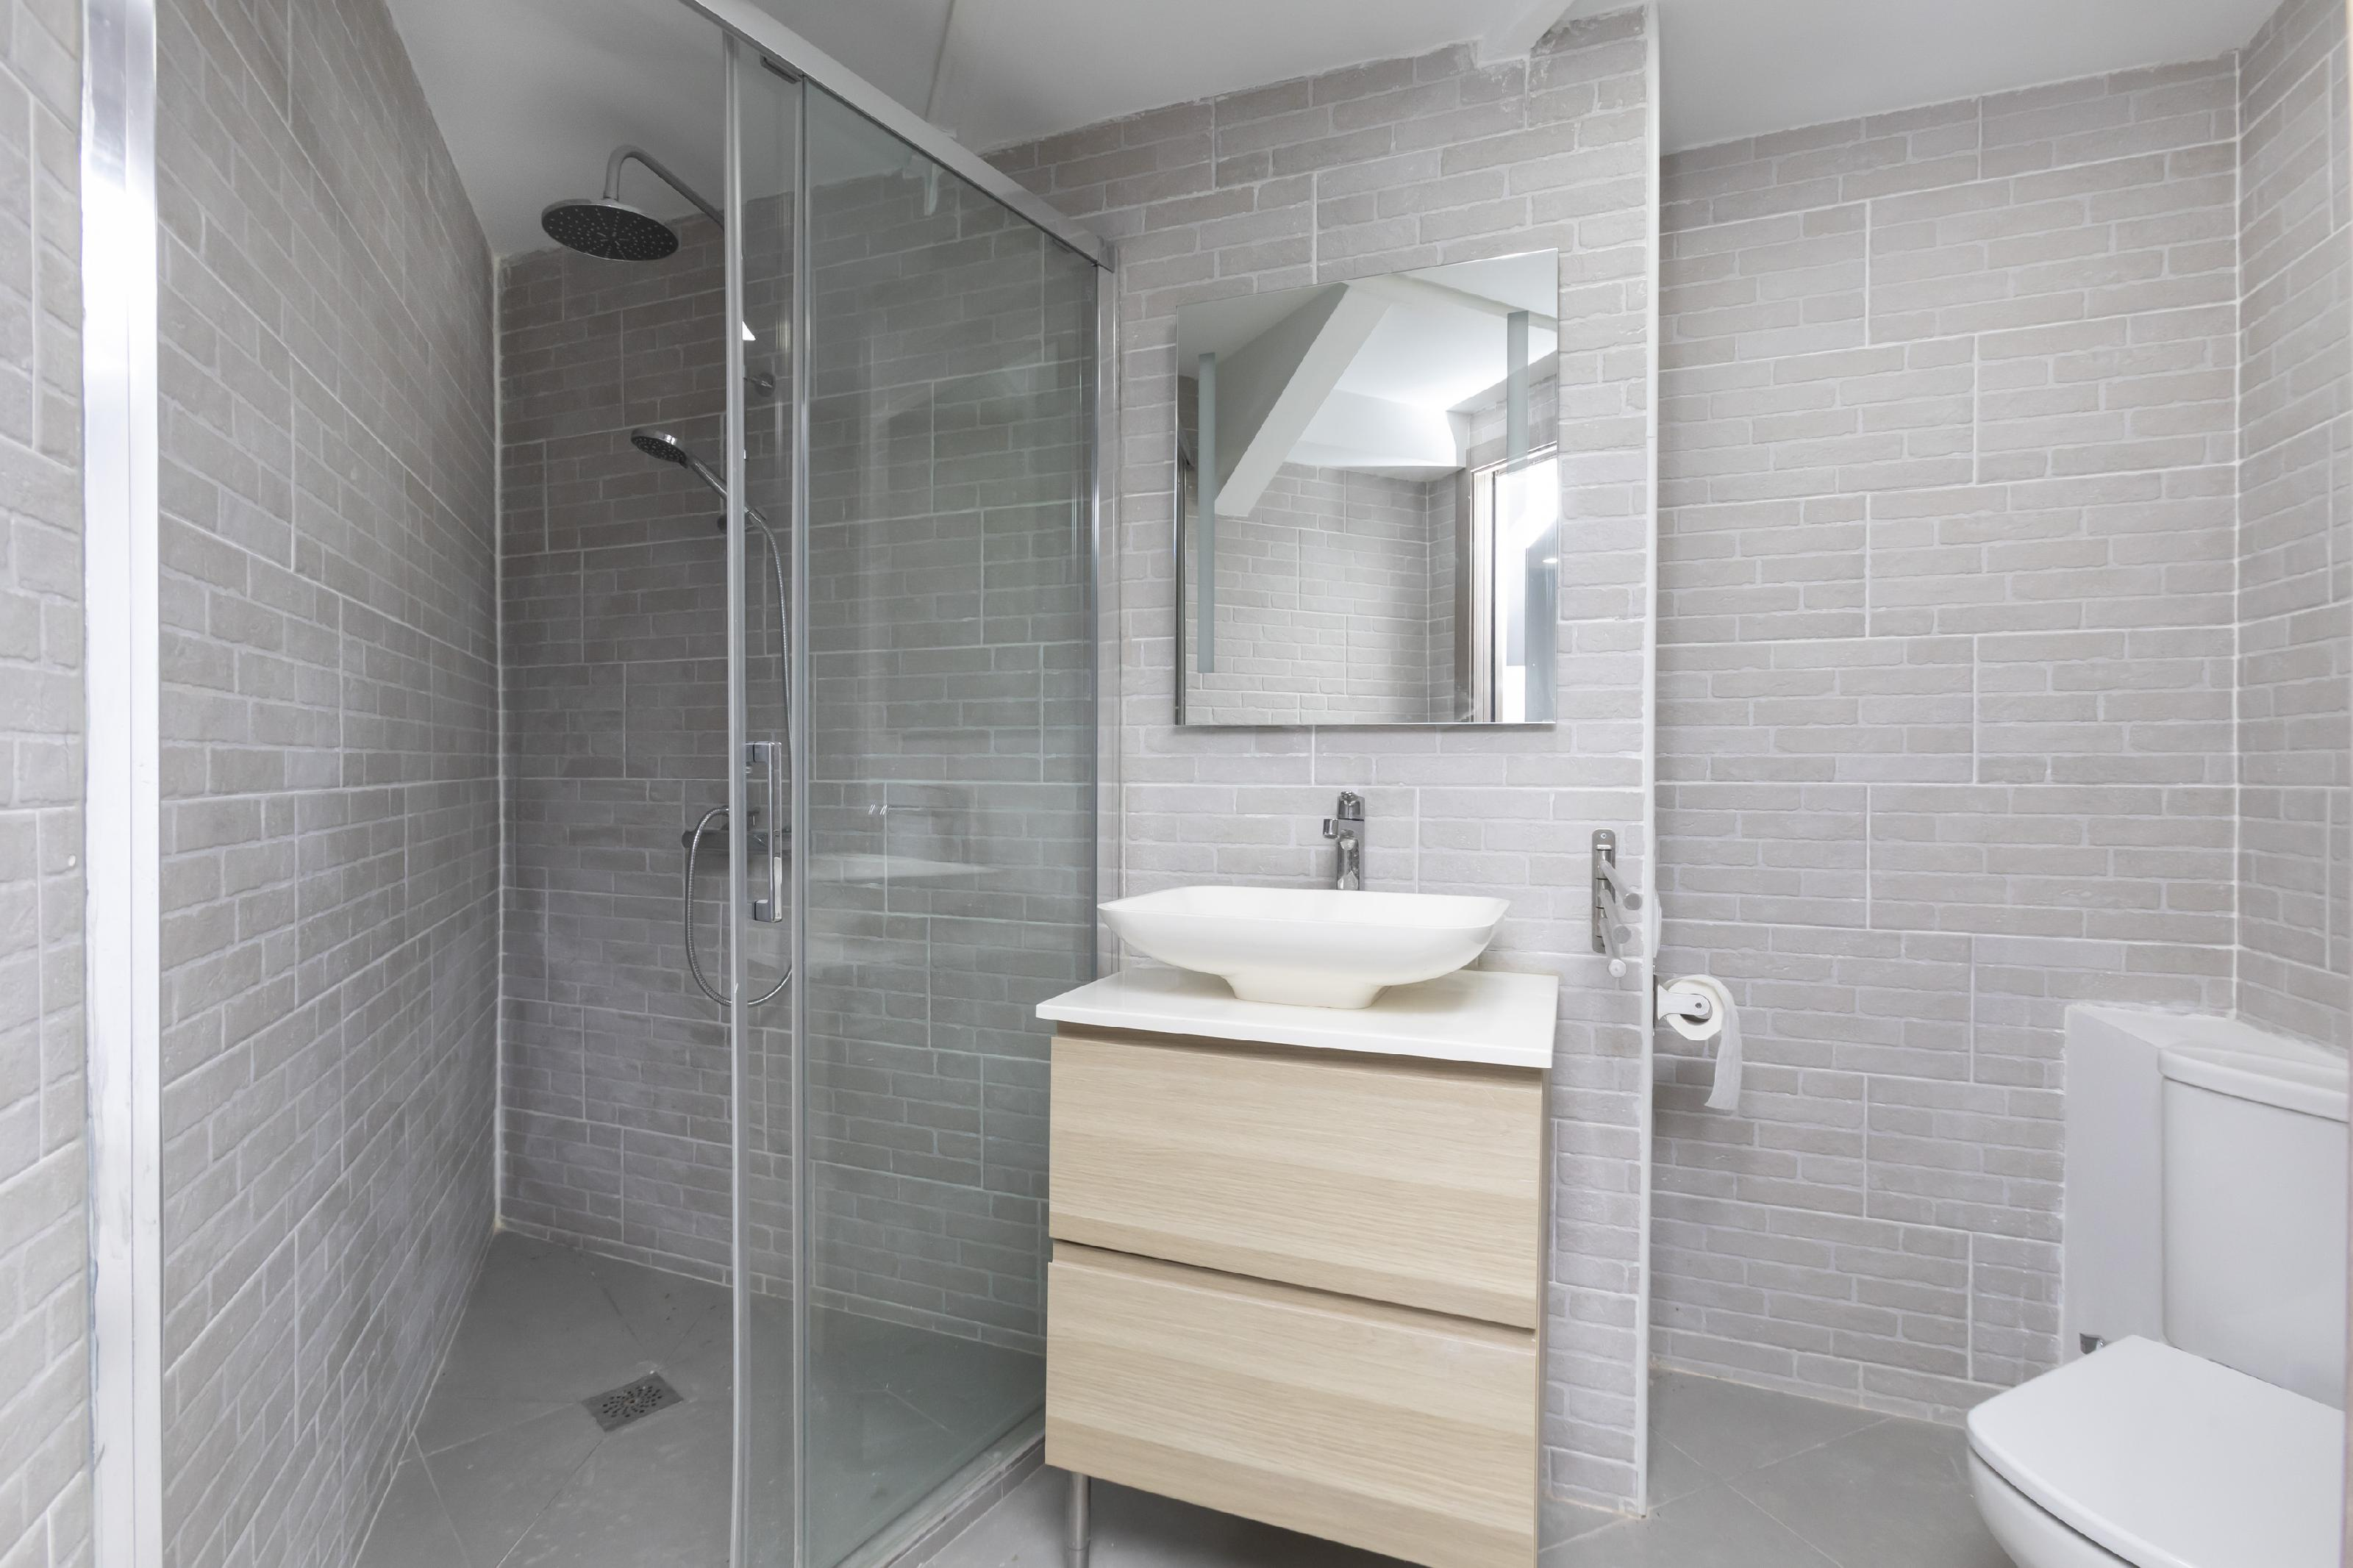 242978 Flat for sale in Gràcia, Camp Grassot and Gràcia Nova 16